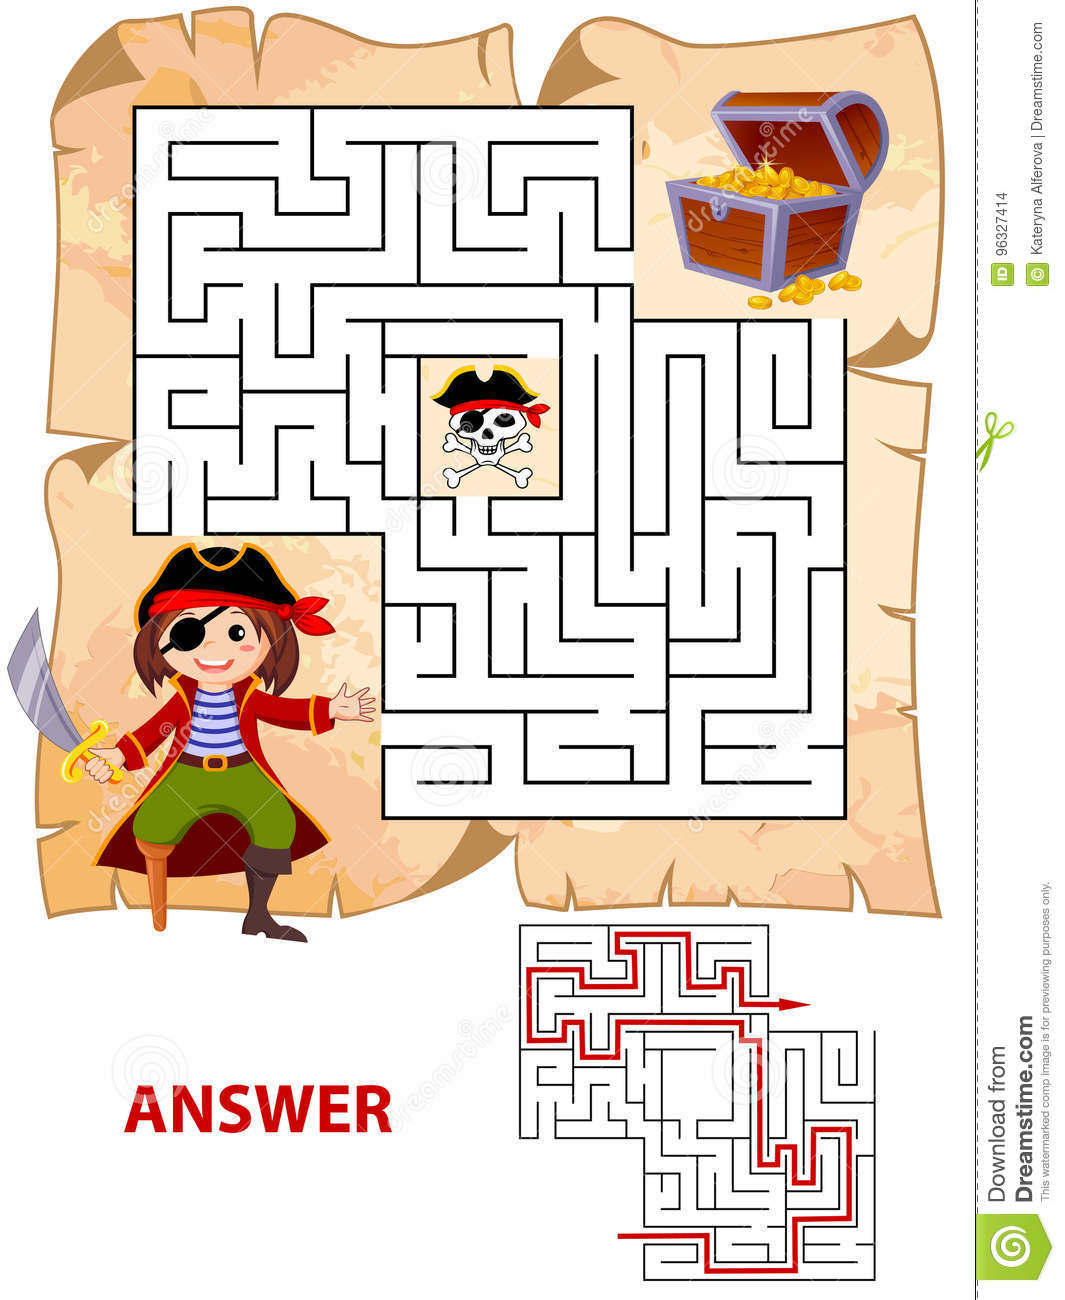 Help Pirate Find Path To Treasure Chest Labyrinth Maze